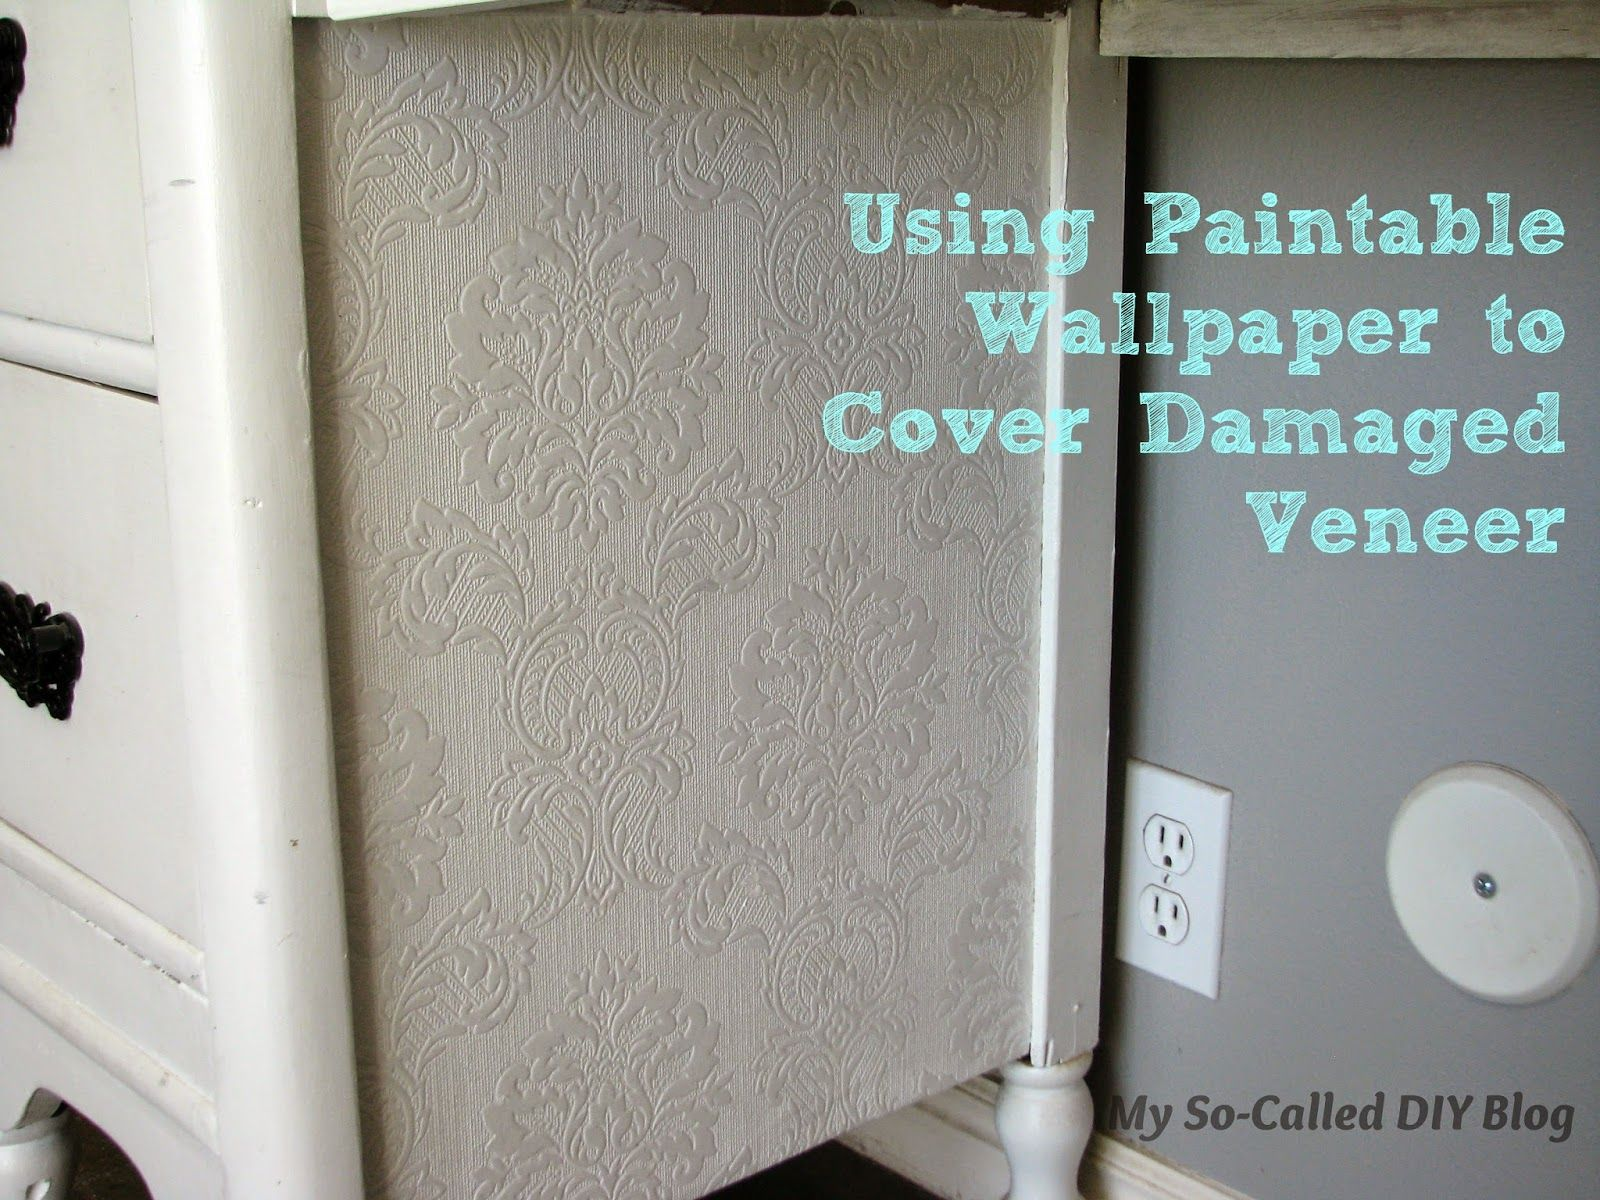 cover my furniture. Cover My Furniture. So-Called DIY Blog: Using Paintable Wallpaper To Furniture